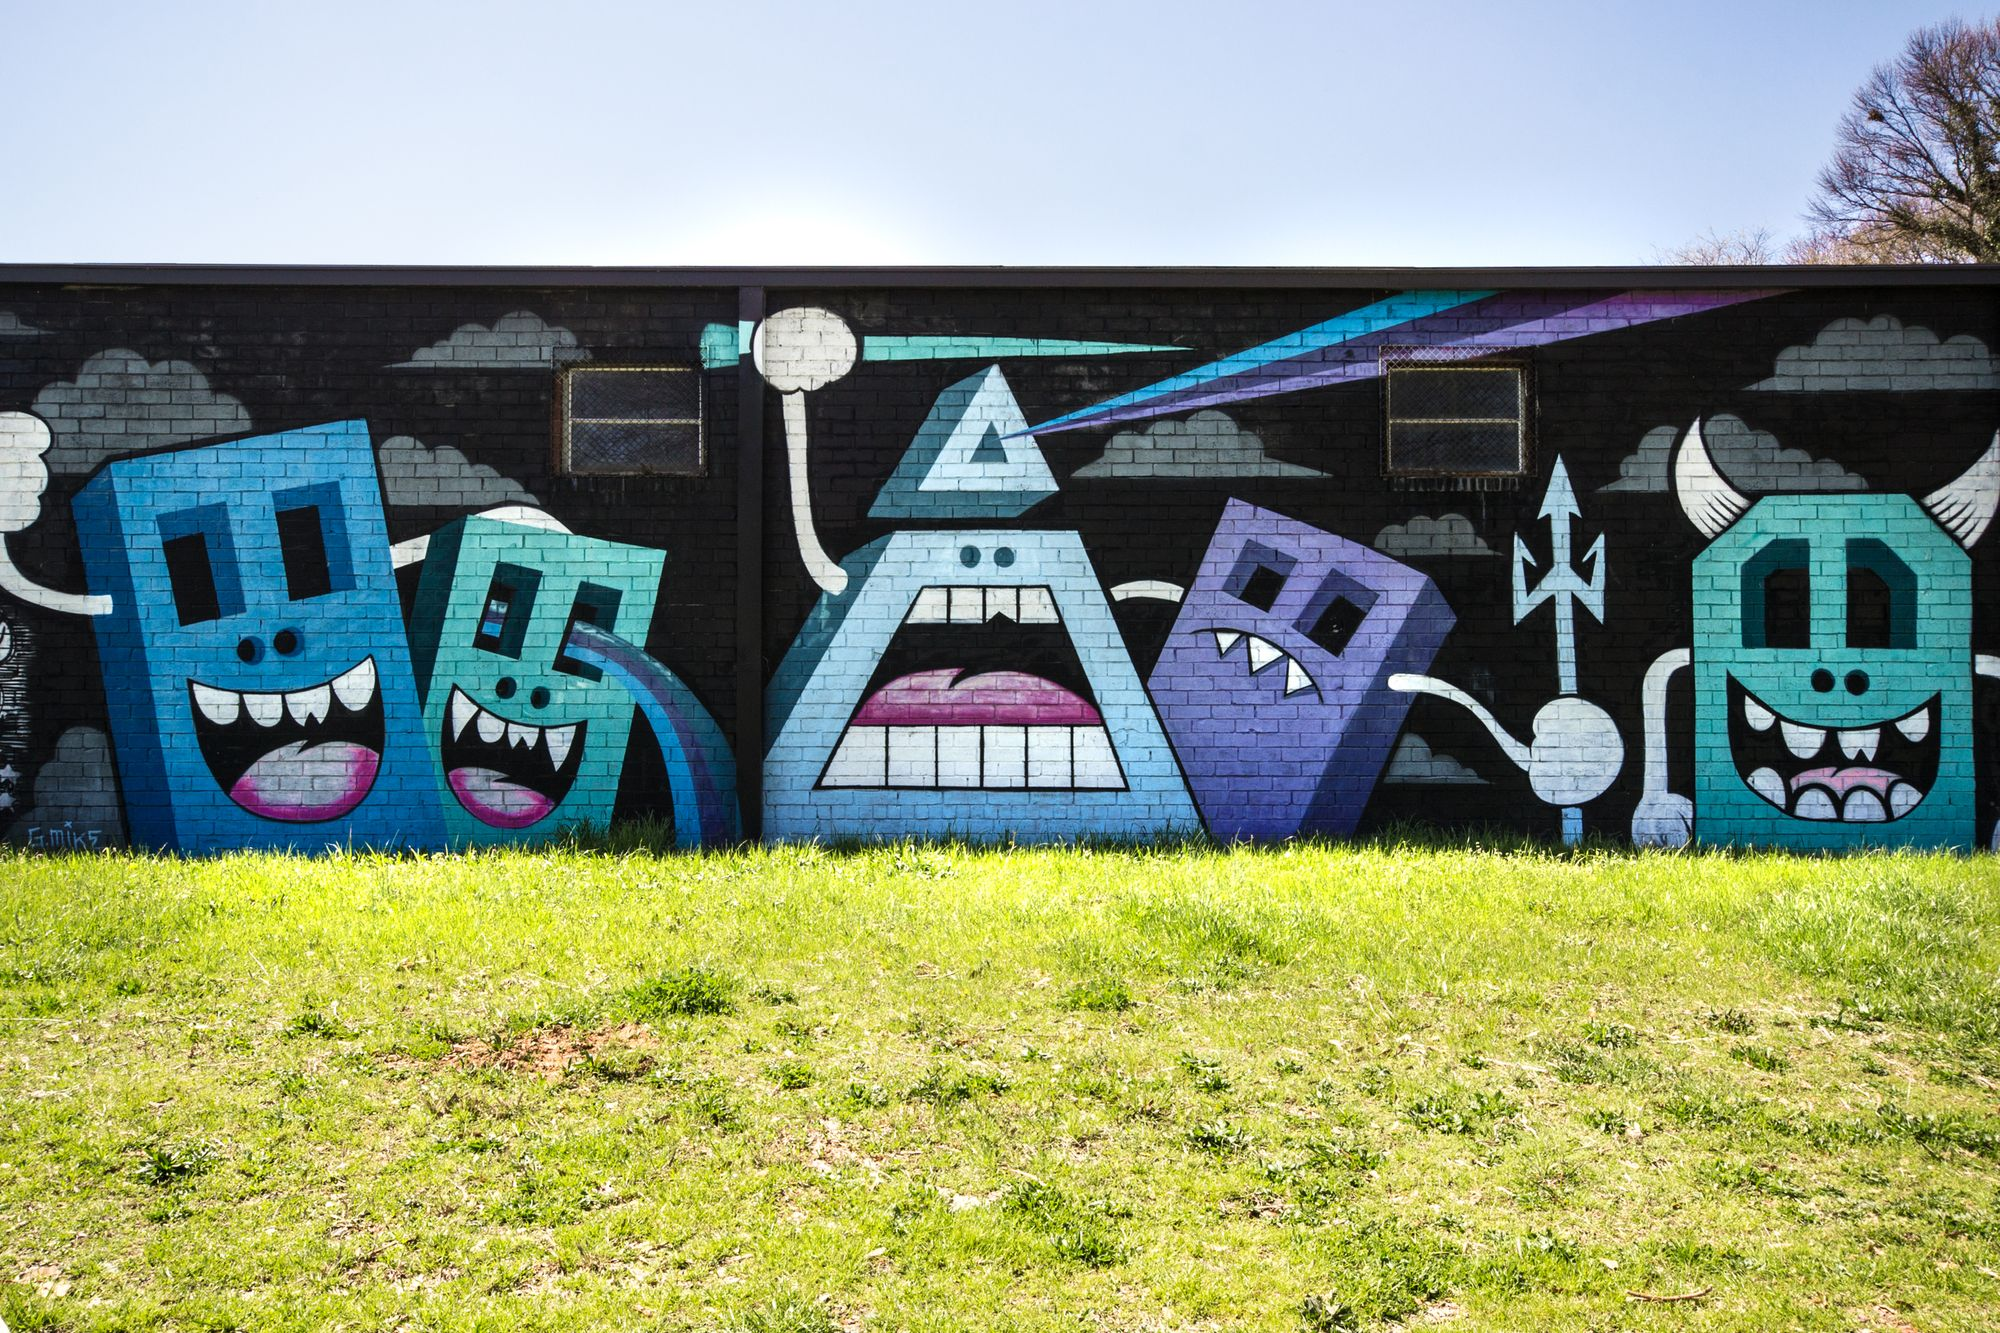 A mural by Greg Mike in his trademark style.